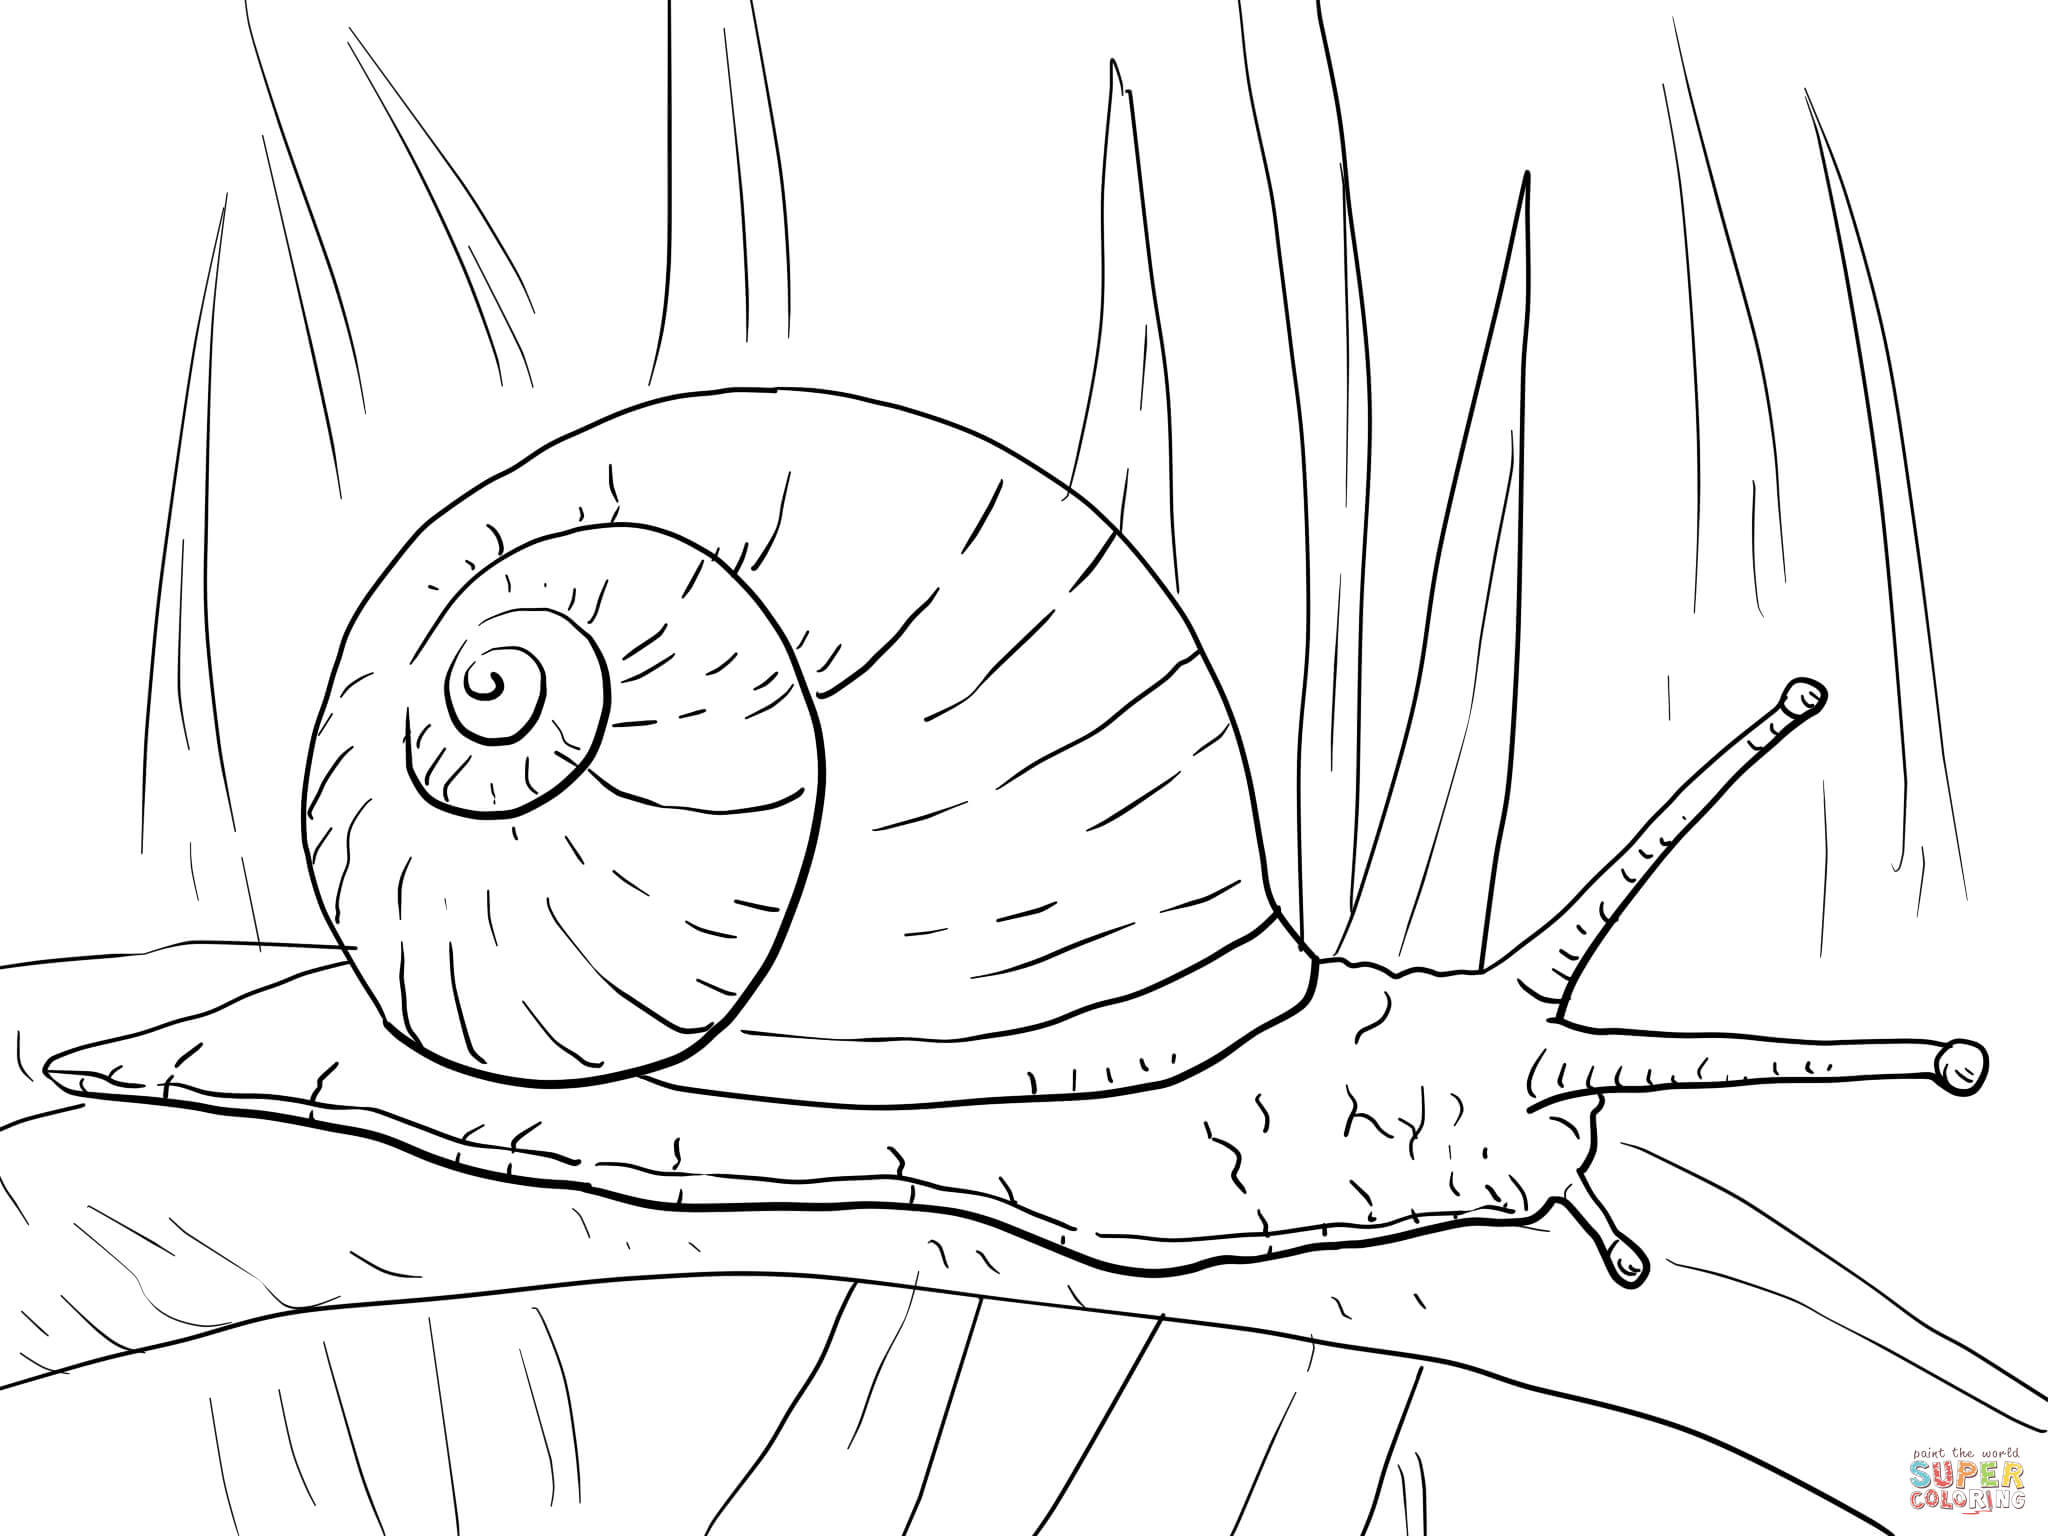 snail coloring page 15 snail coloring page print color craft snail page coloring